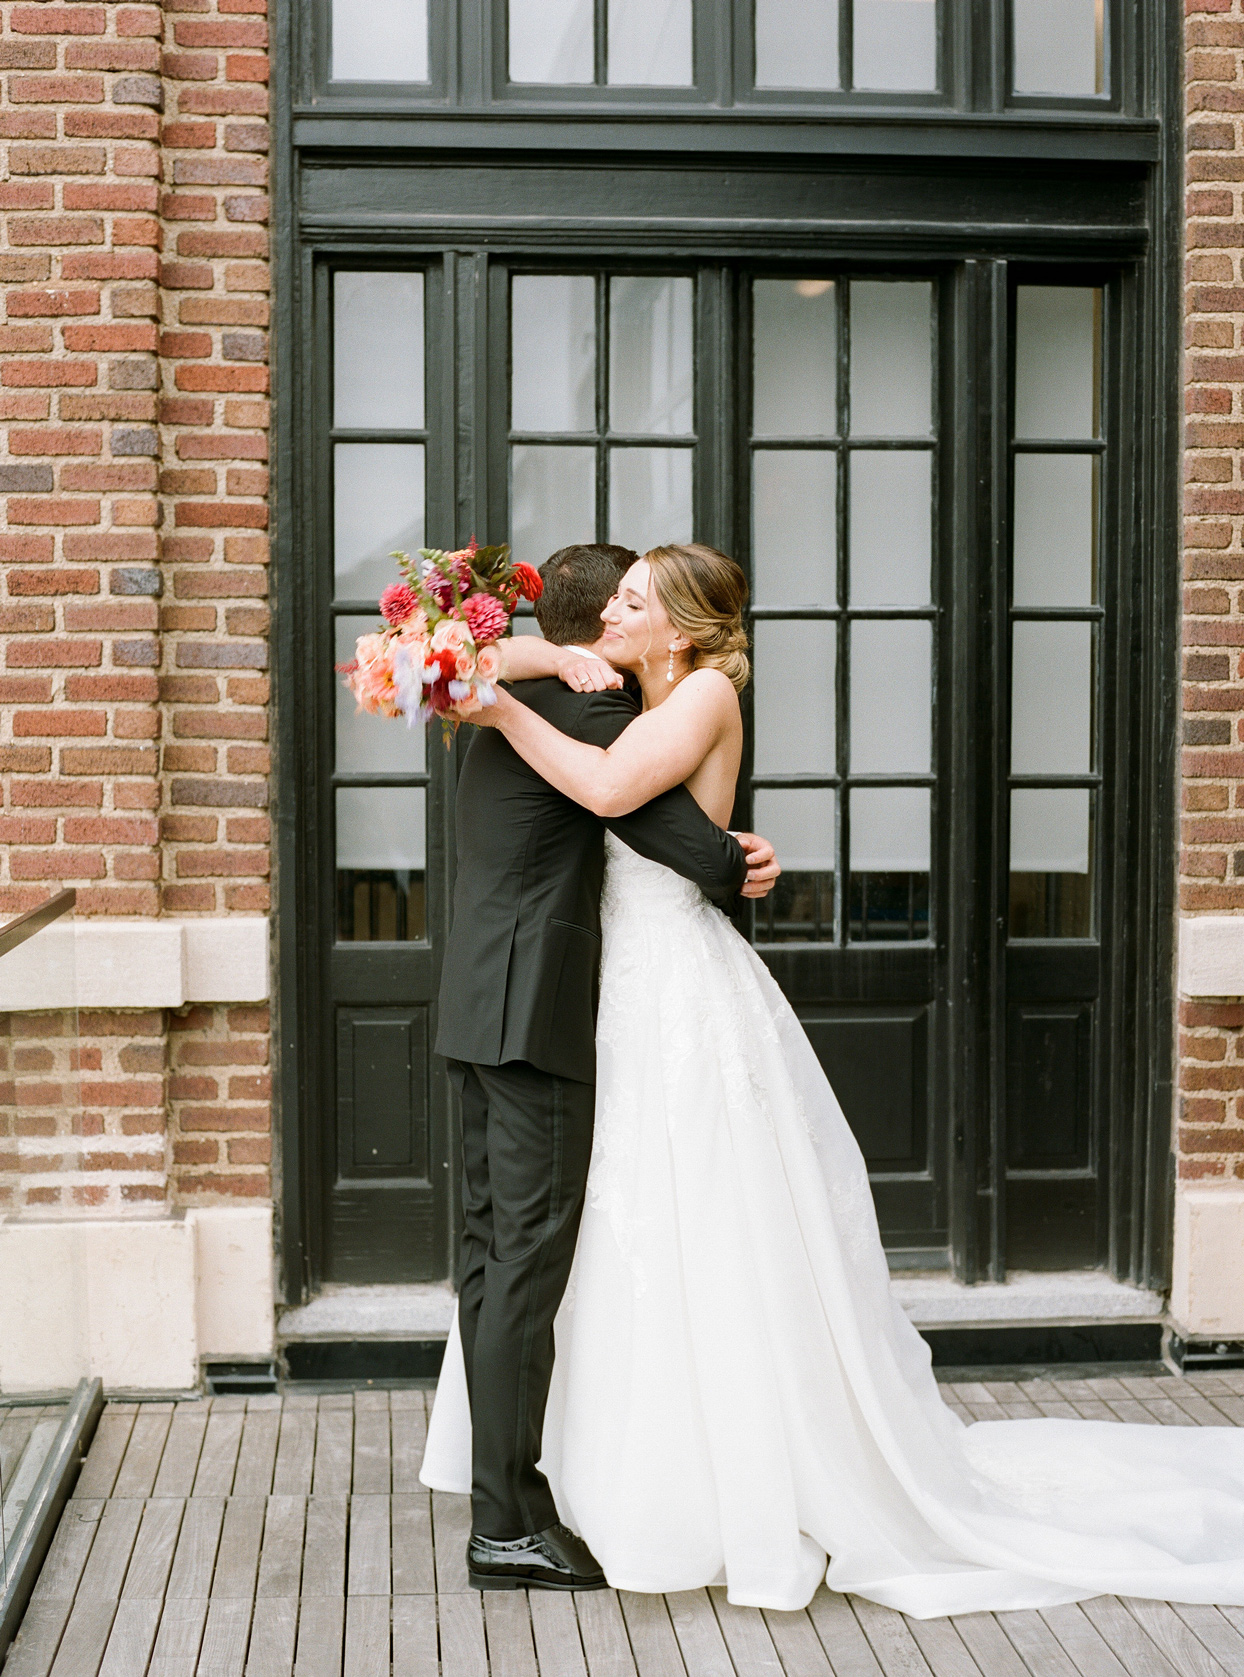 bride and groom hugging and sharing first look